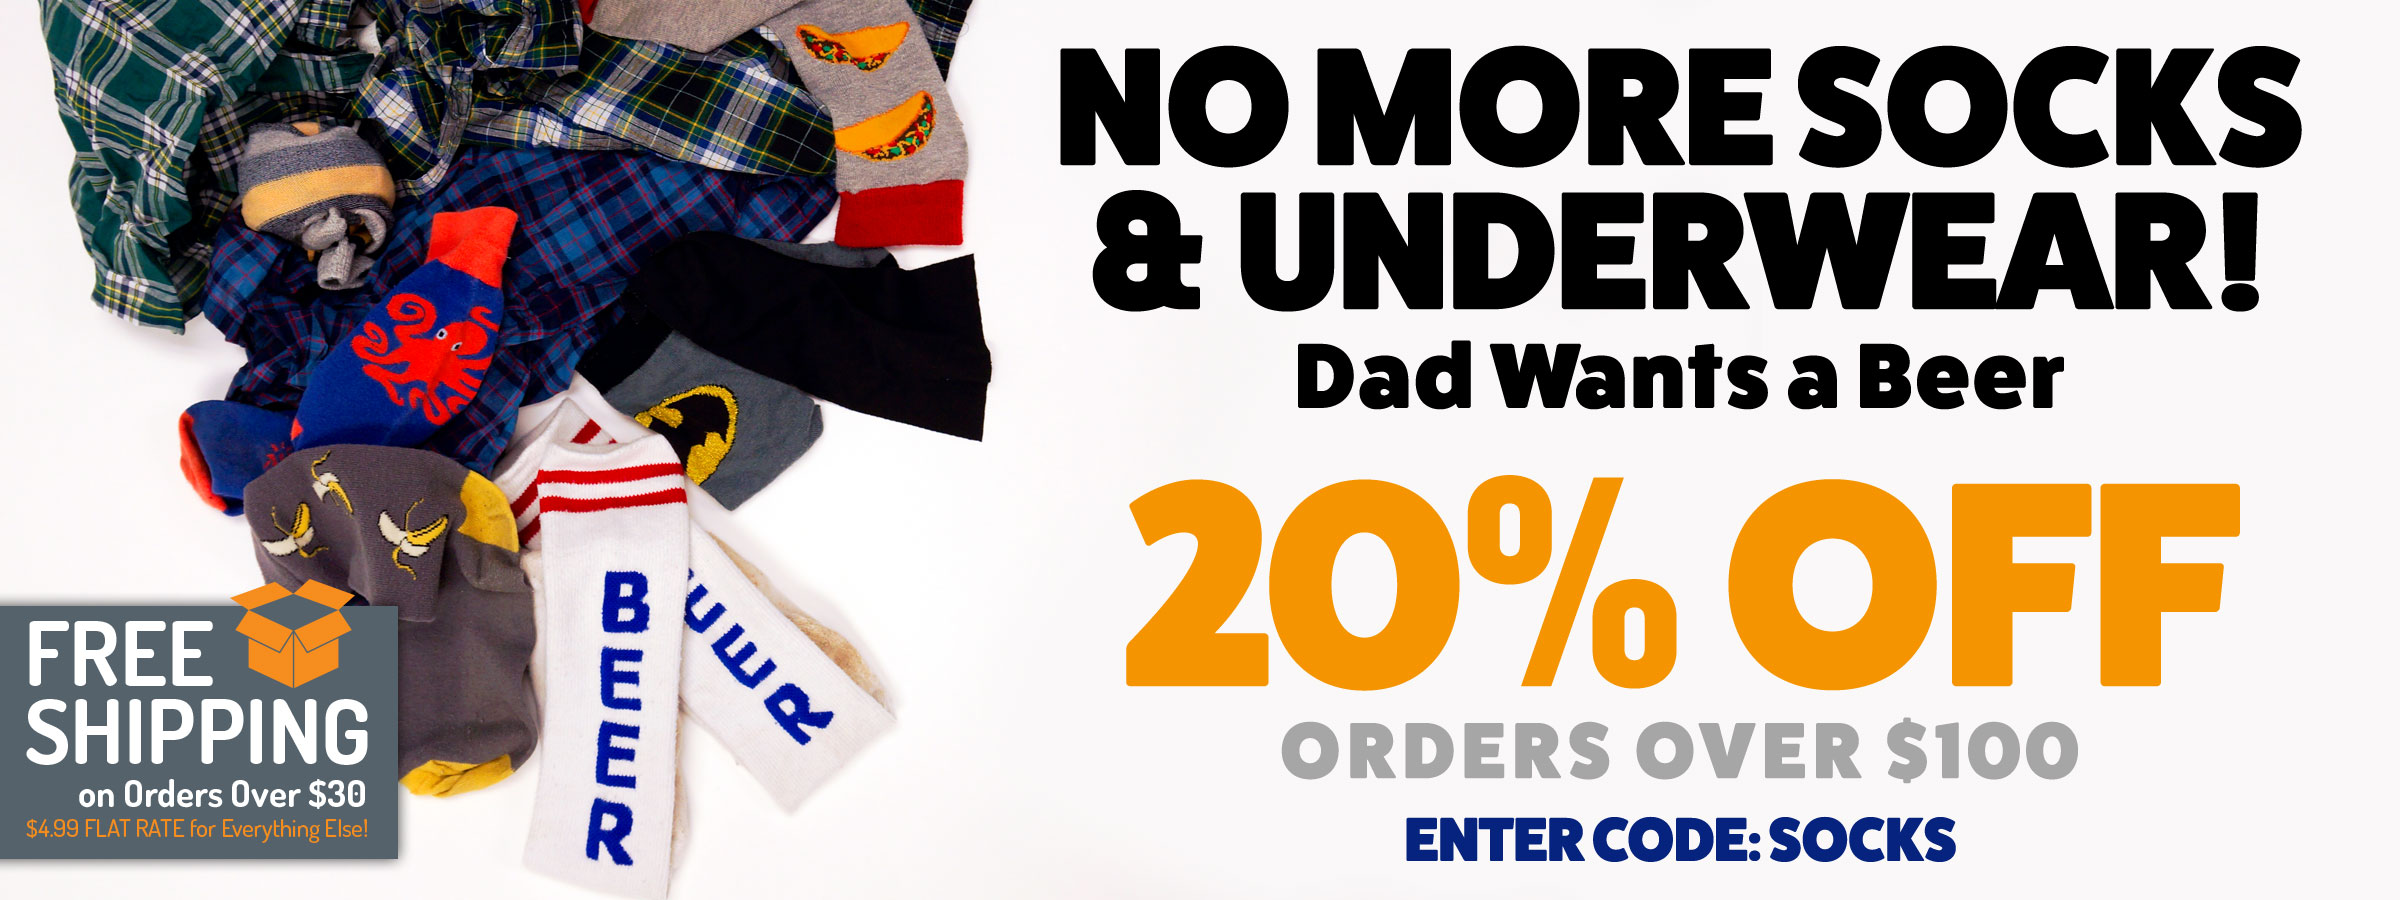 Enjoy 20% off orders of $100 or more.